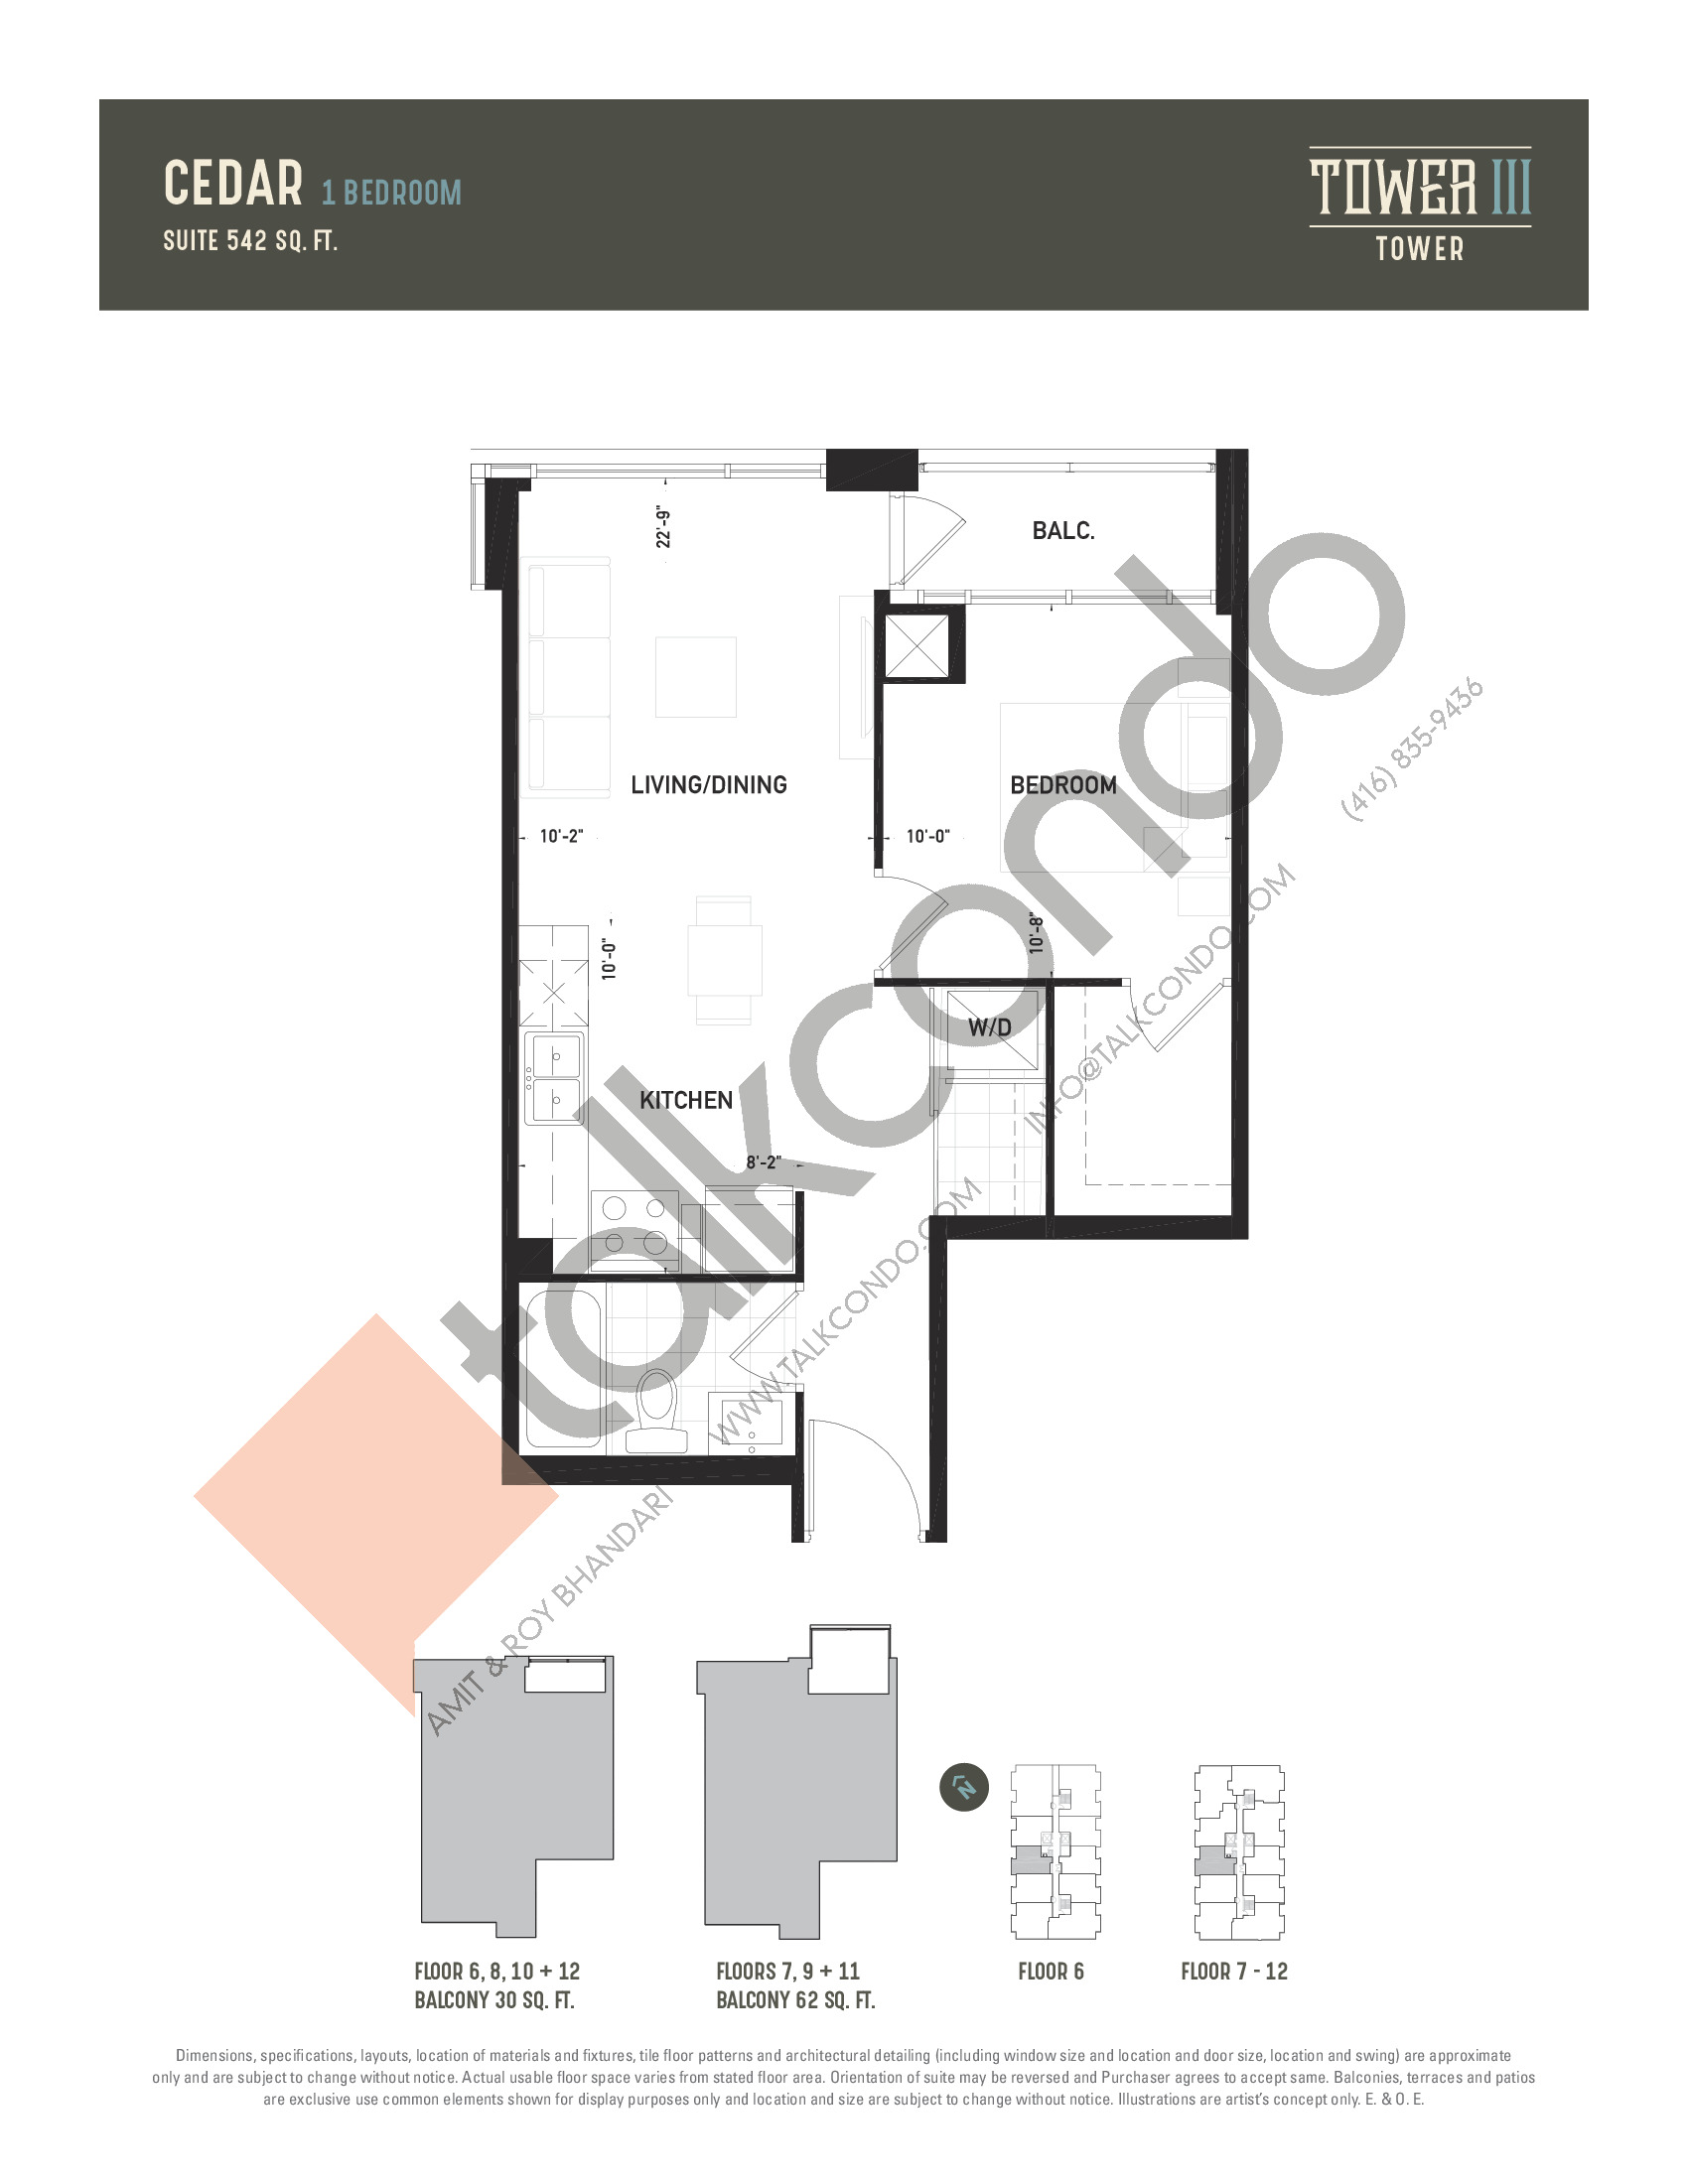 Cedar Floor Plan at Oak & Co. 3 Condos - 542 sq.ft